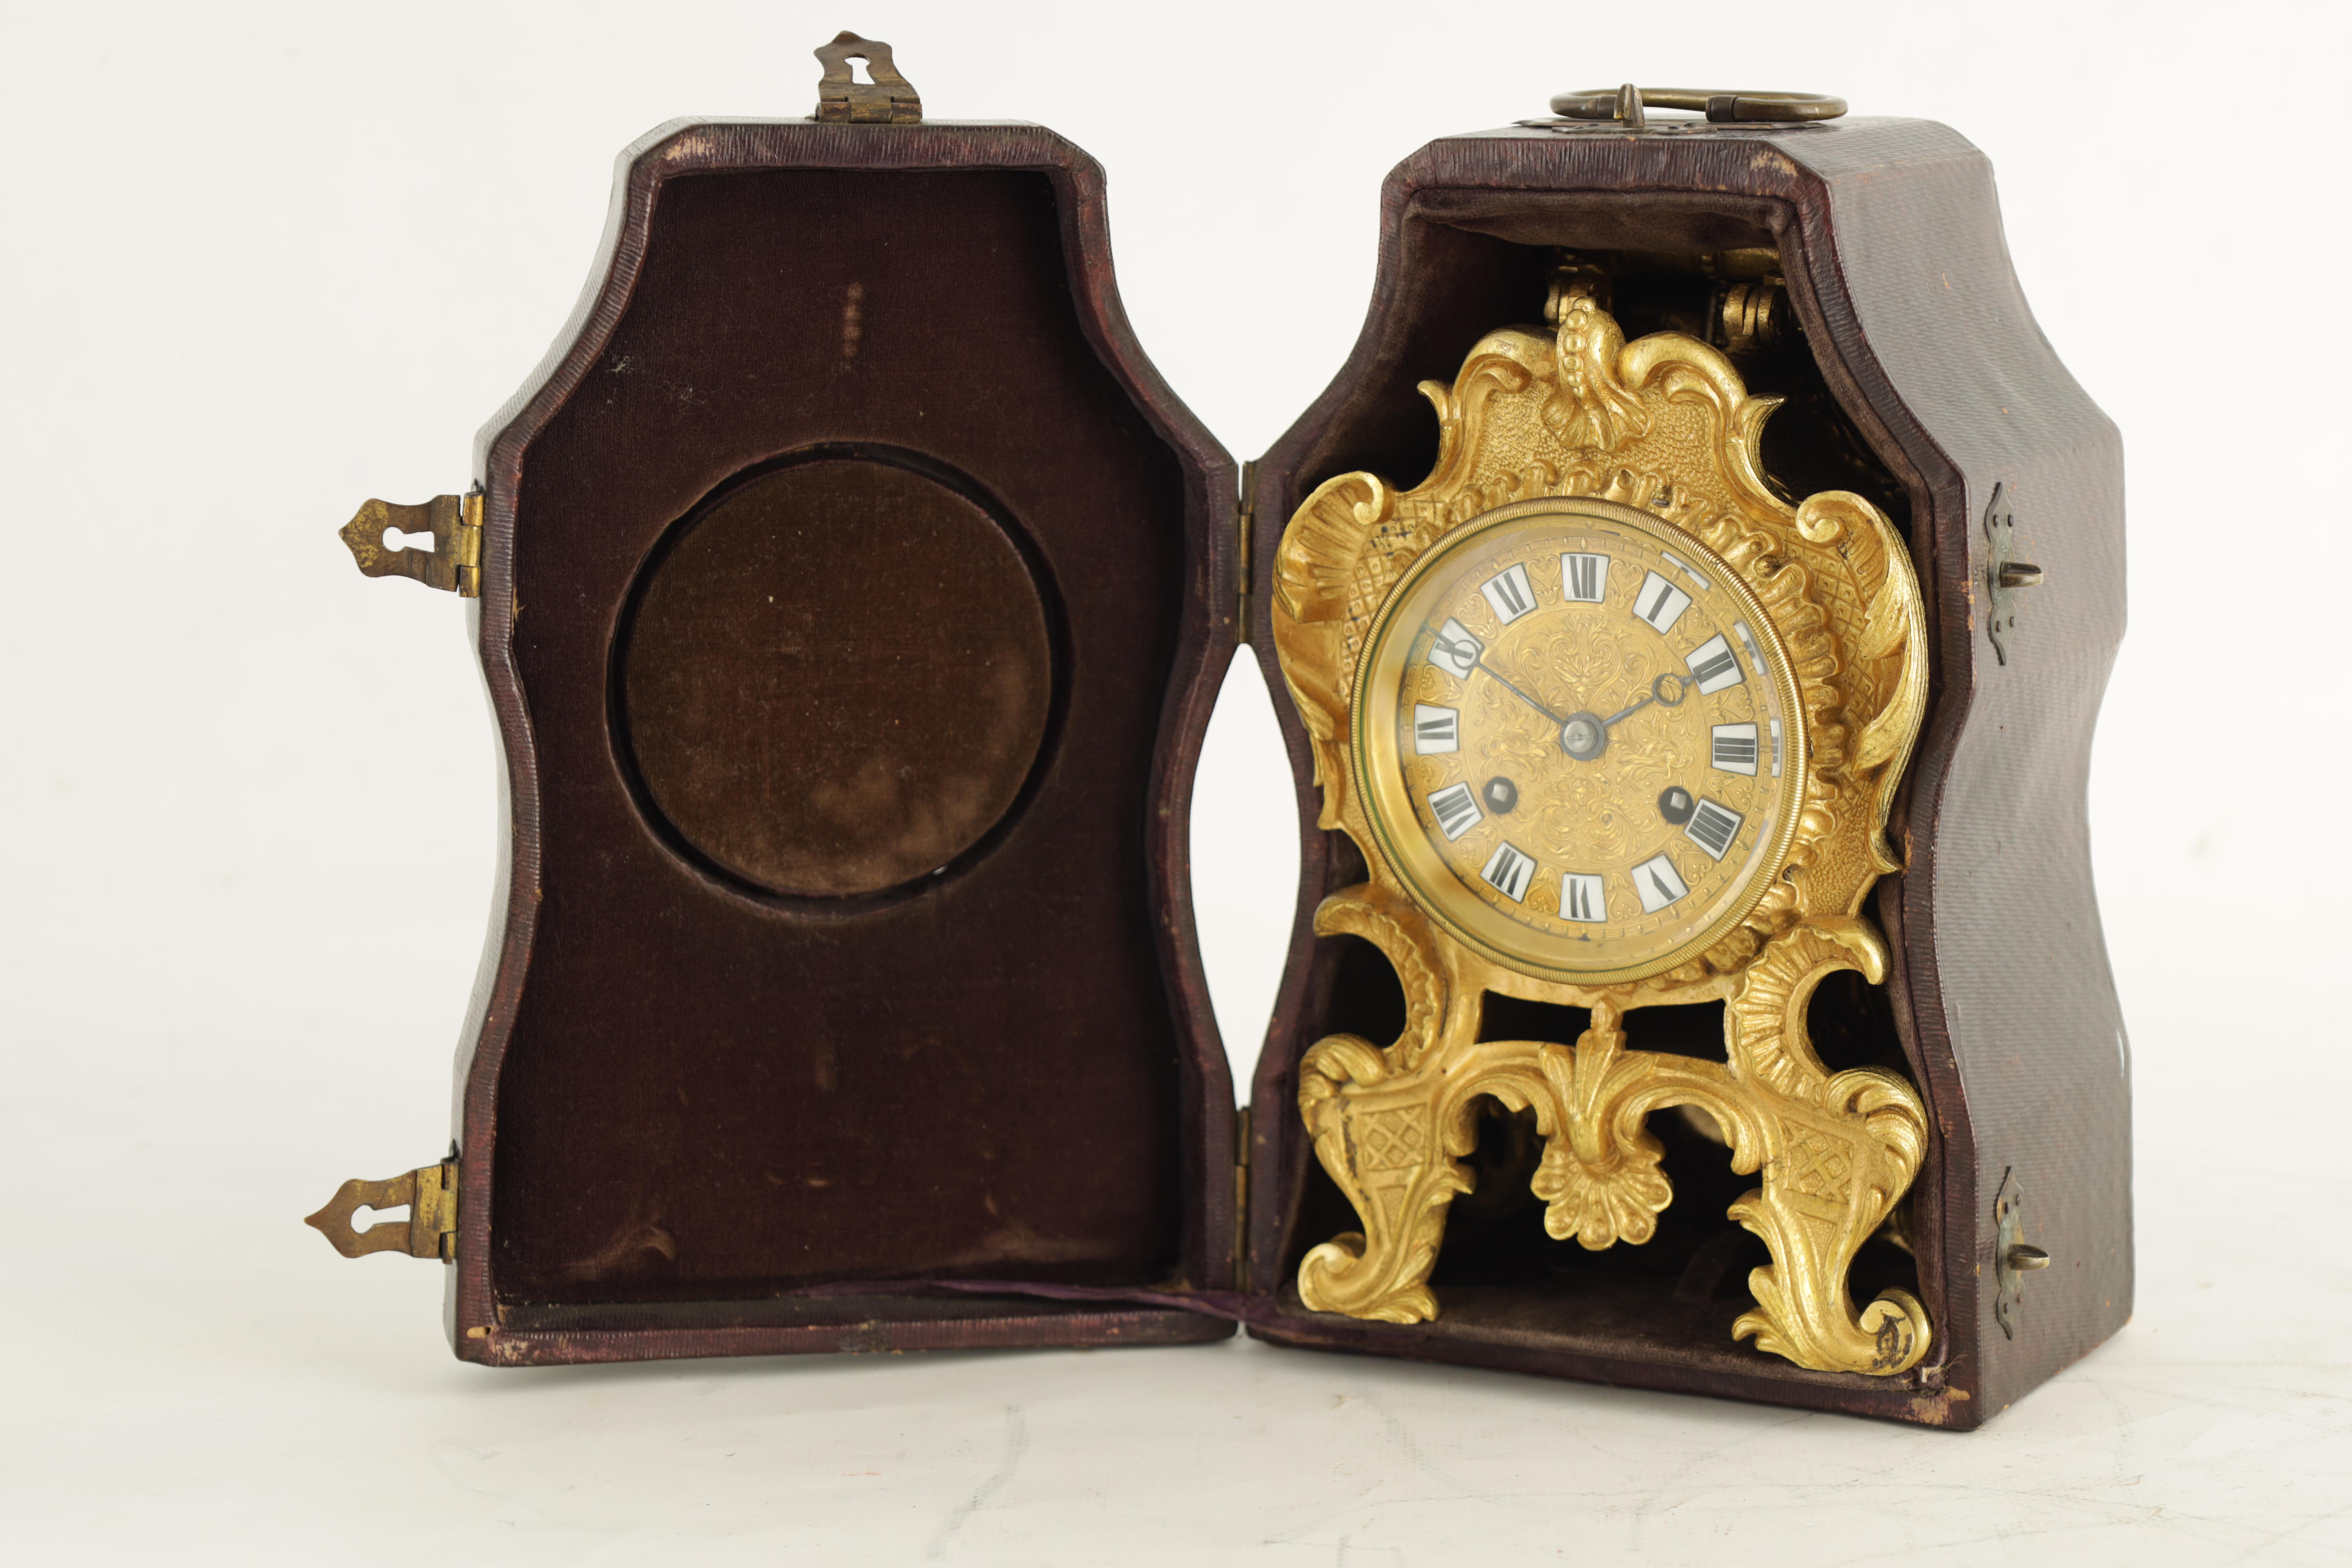 PAUL GARNIER, PARIS A MID 19TH CENTURY FRENCH TRAVELLING MANTEL CLOCK the gilt bronze rococo style - Image 4 of 13